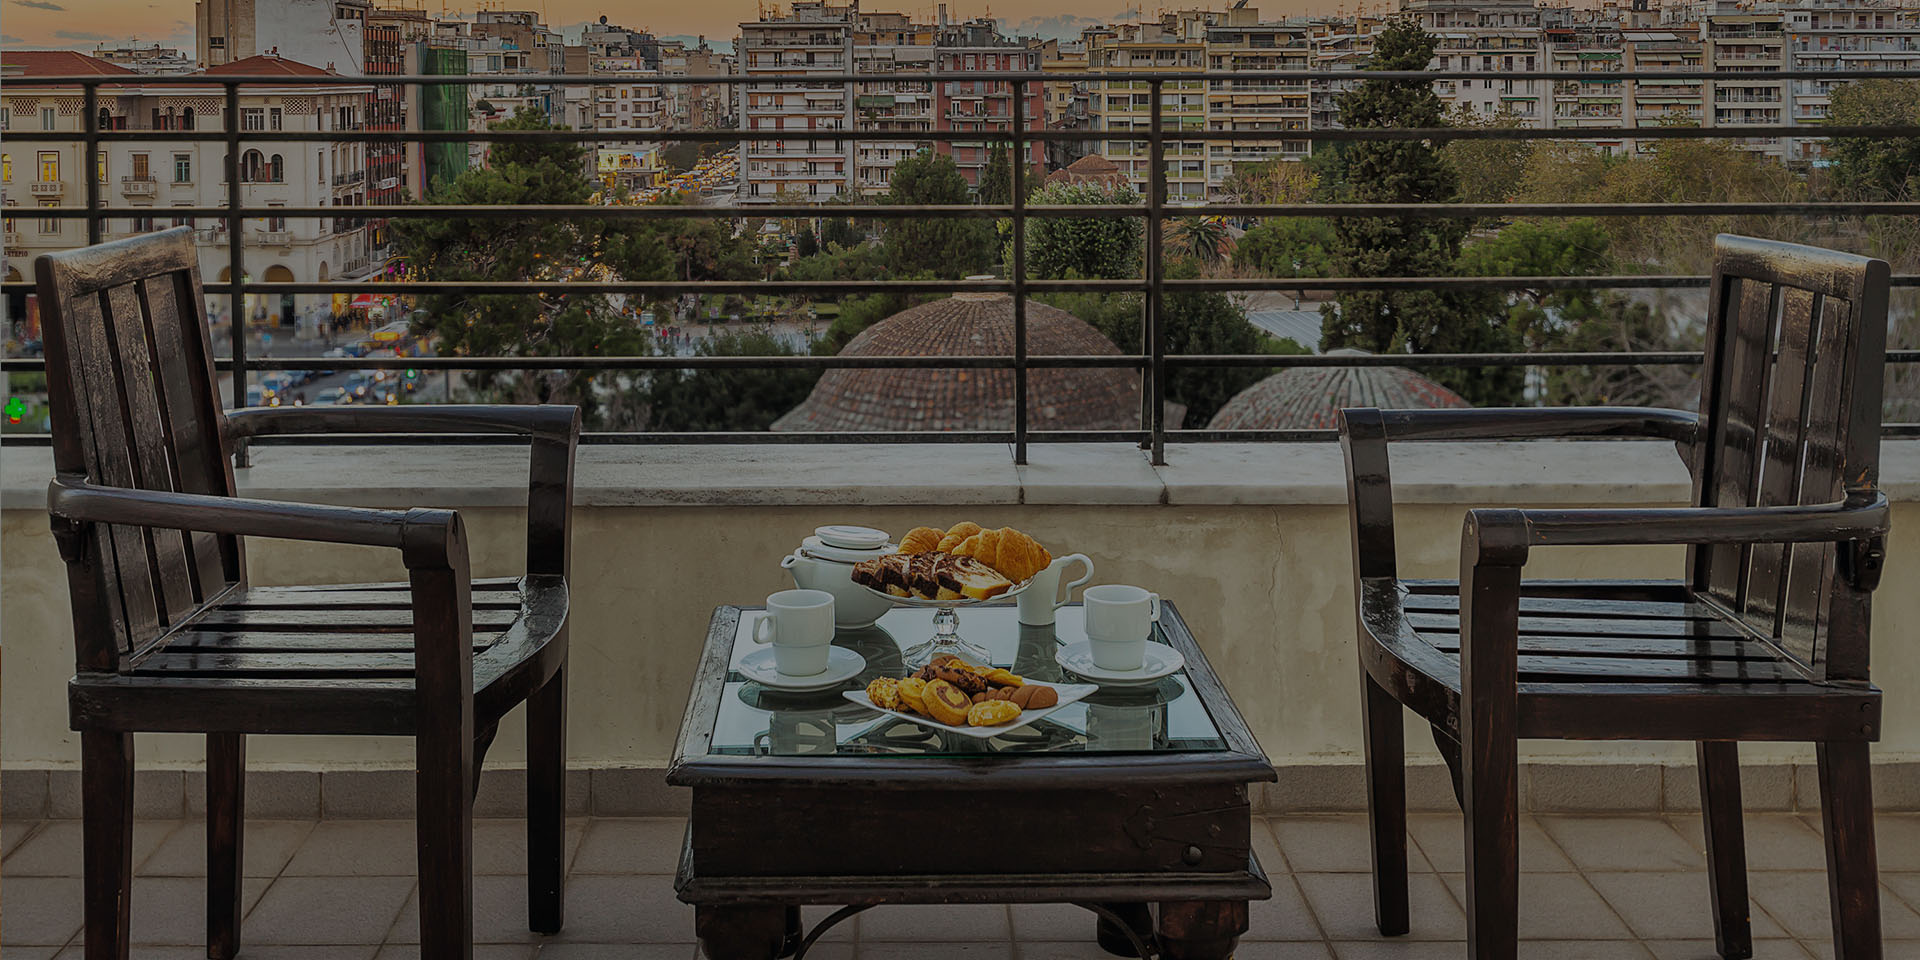 thessaloniki hotels - Aegeon hotels